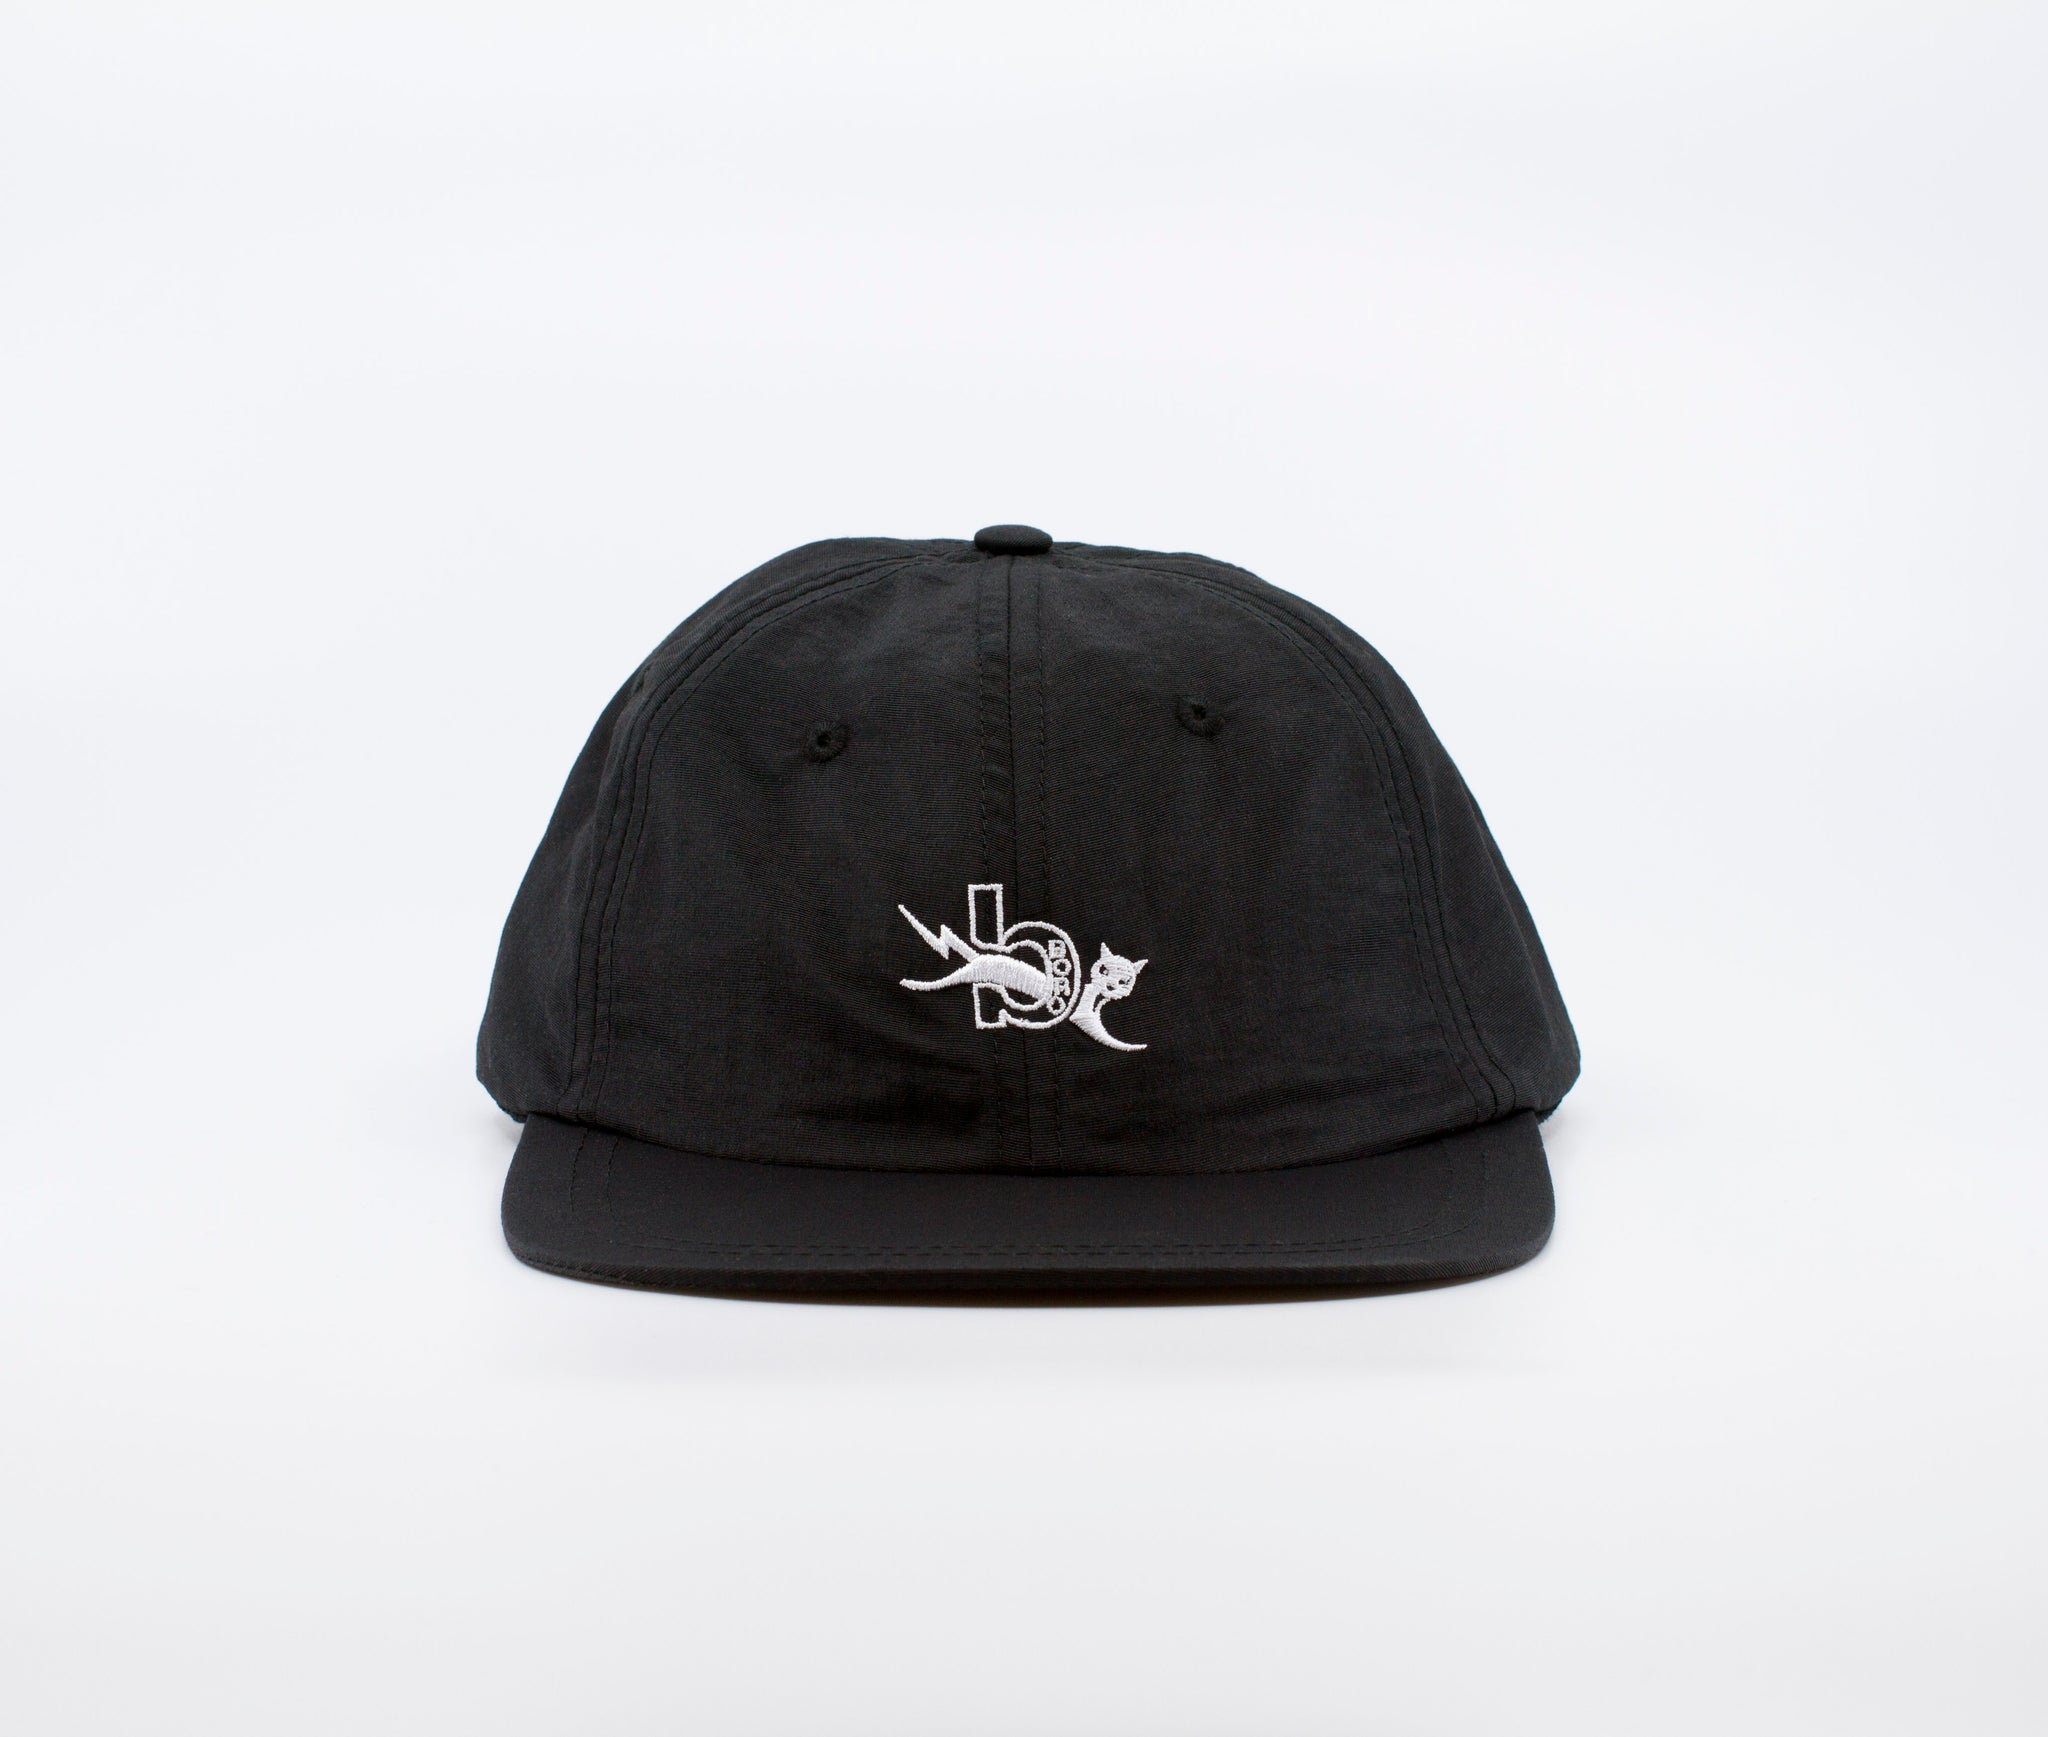 Always Ready - Supplex® Nylon cap